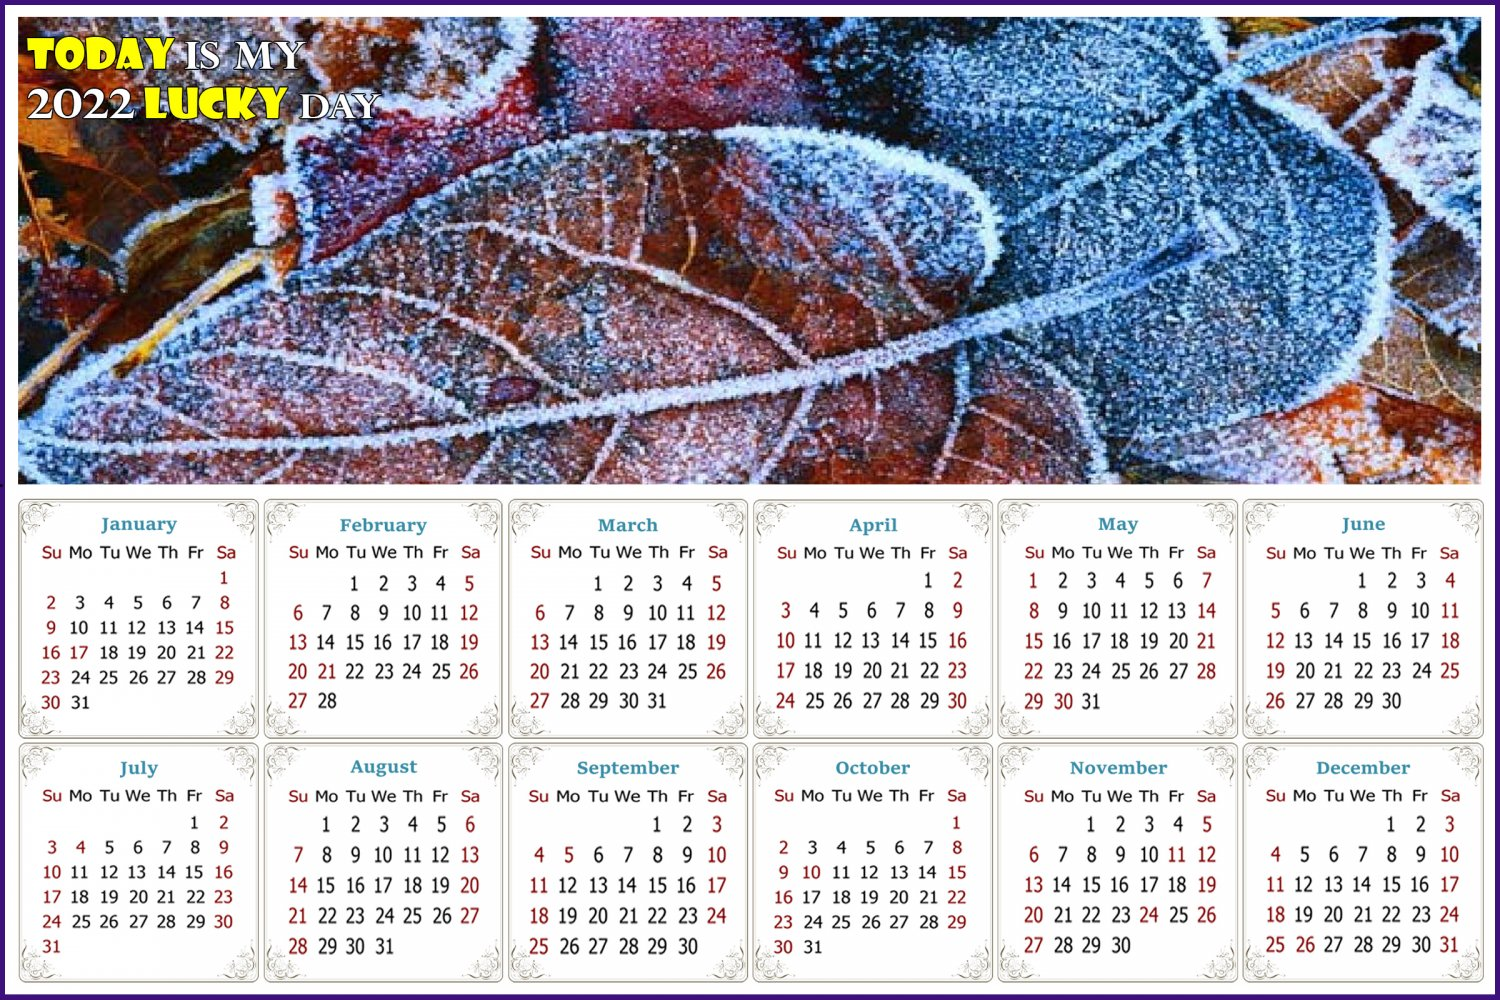 2022 Magnetic Calendar - Calendar Magnets - Today is my Lucky Day - Edition #36